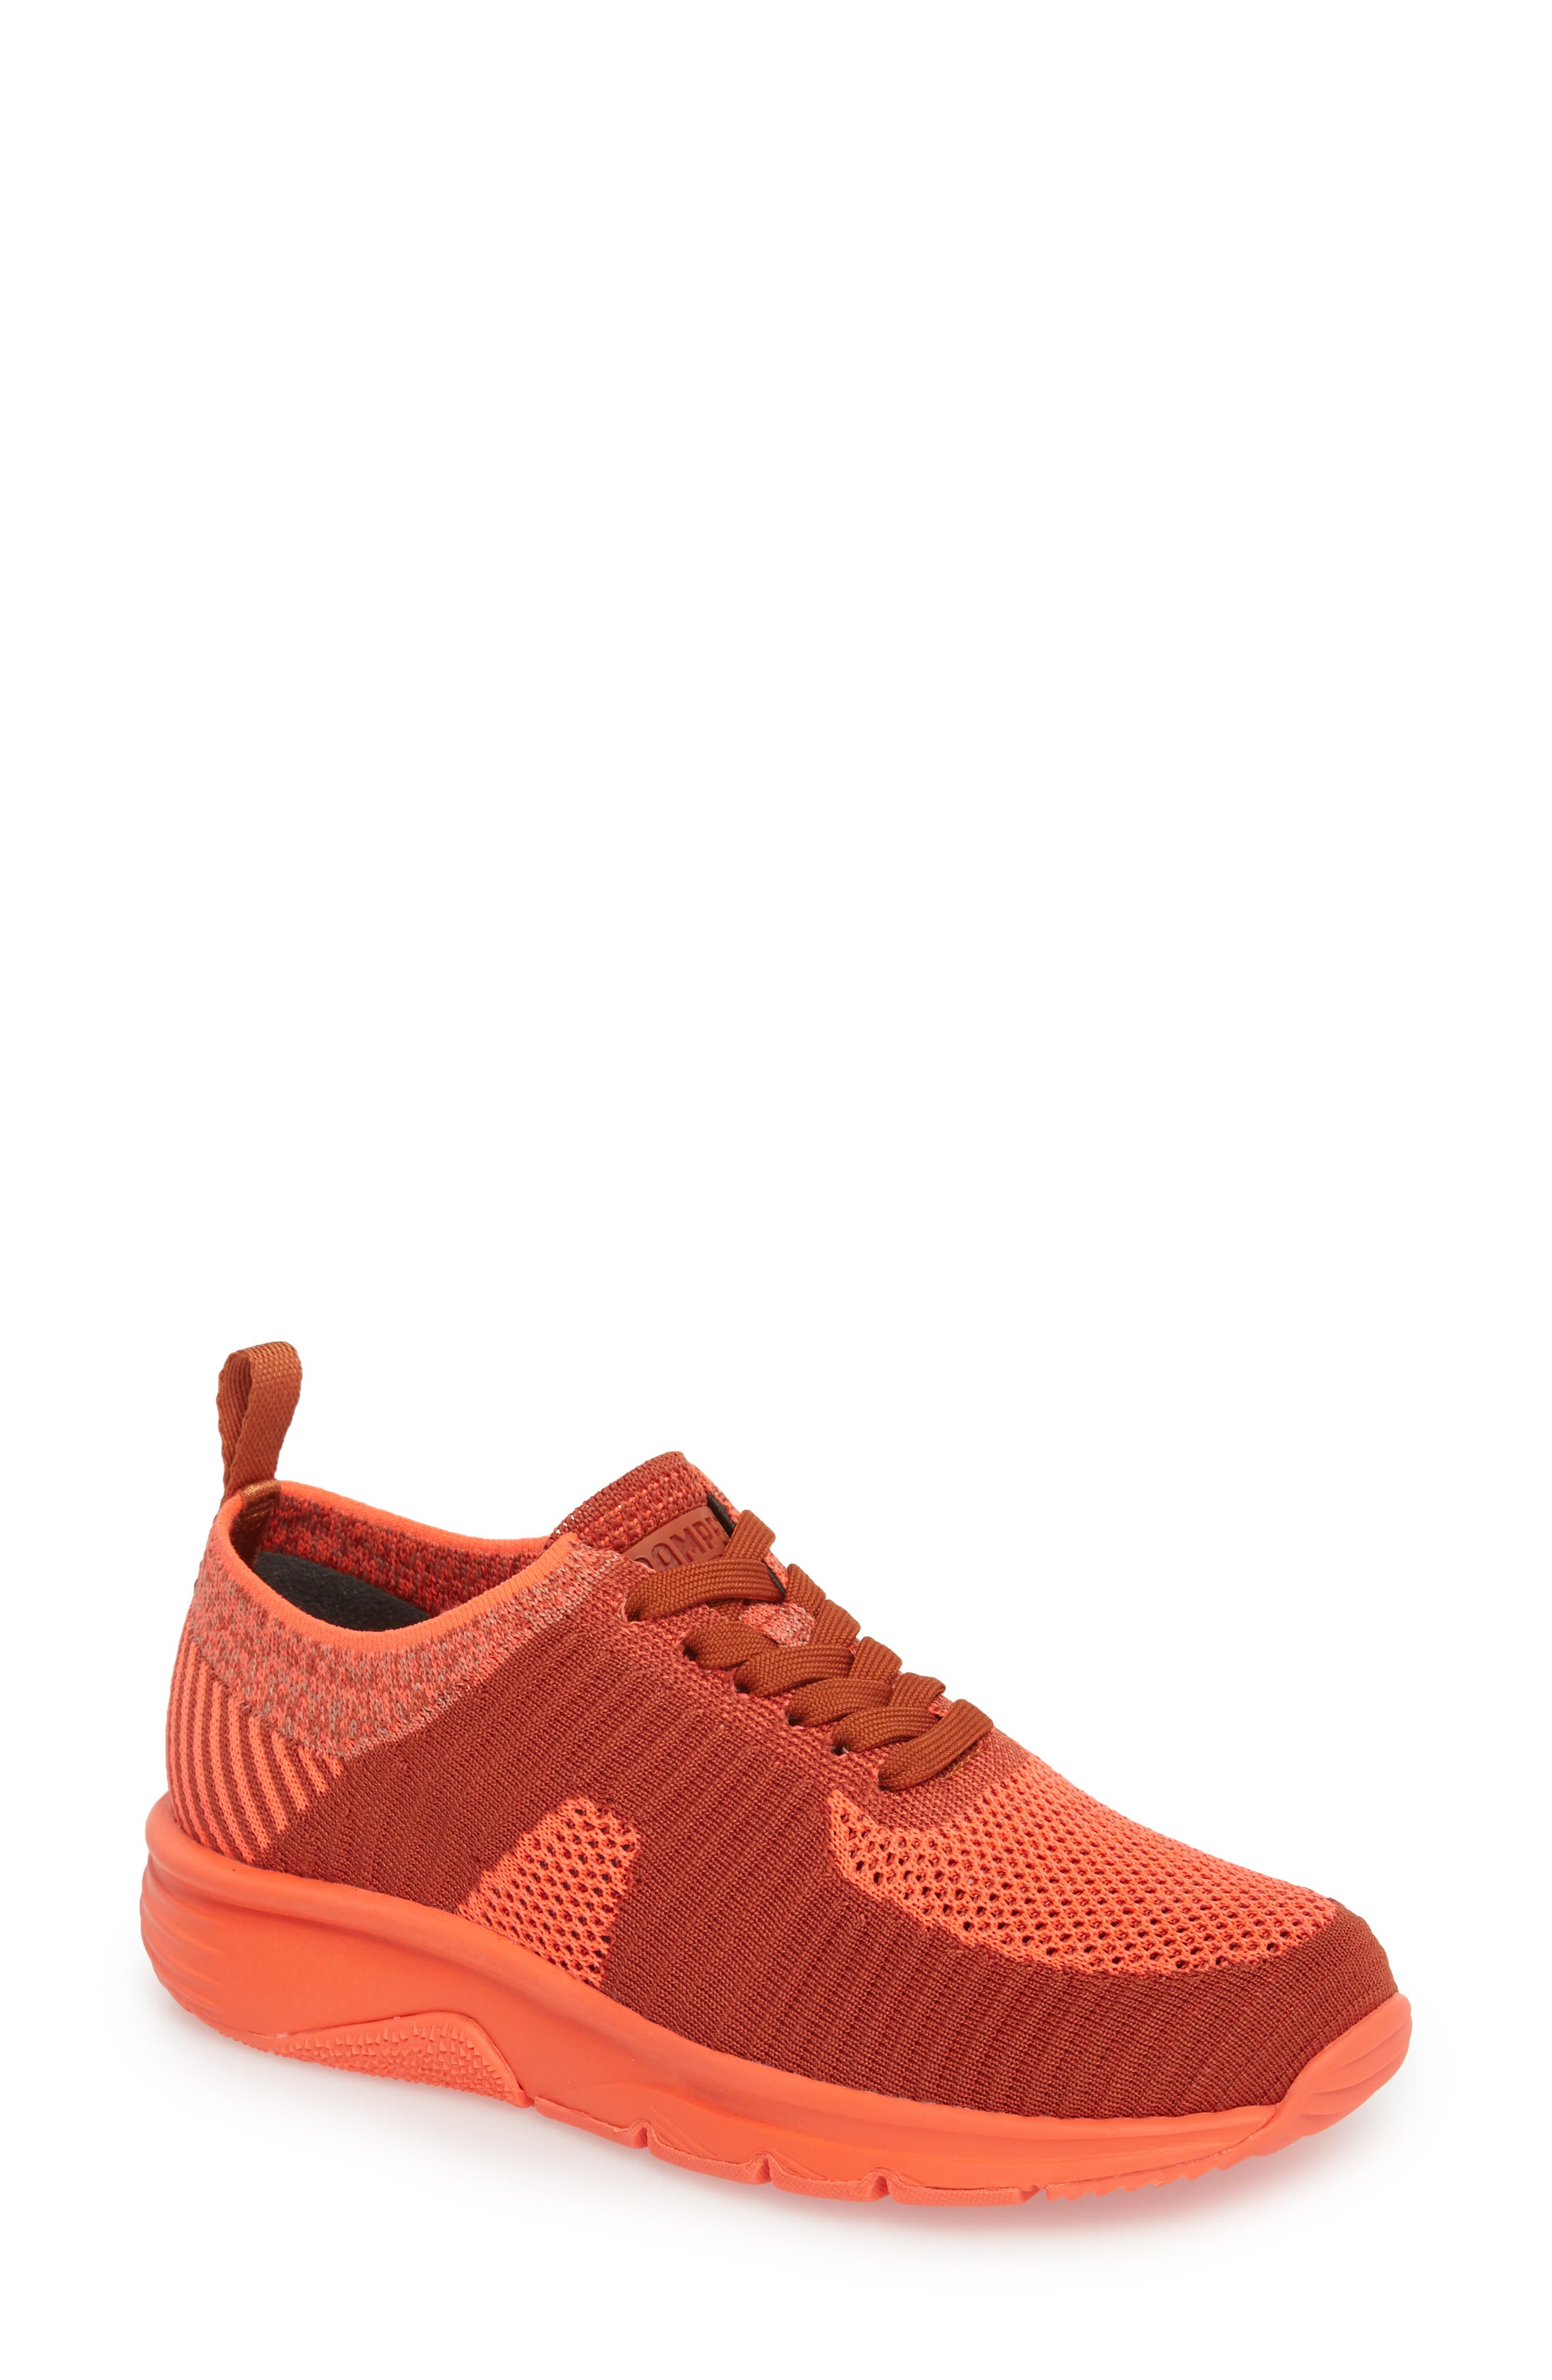 Drift Knit Sneaker,                             Main thumbnail 1, color,                             RED - ASSORTED FABRIC